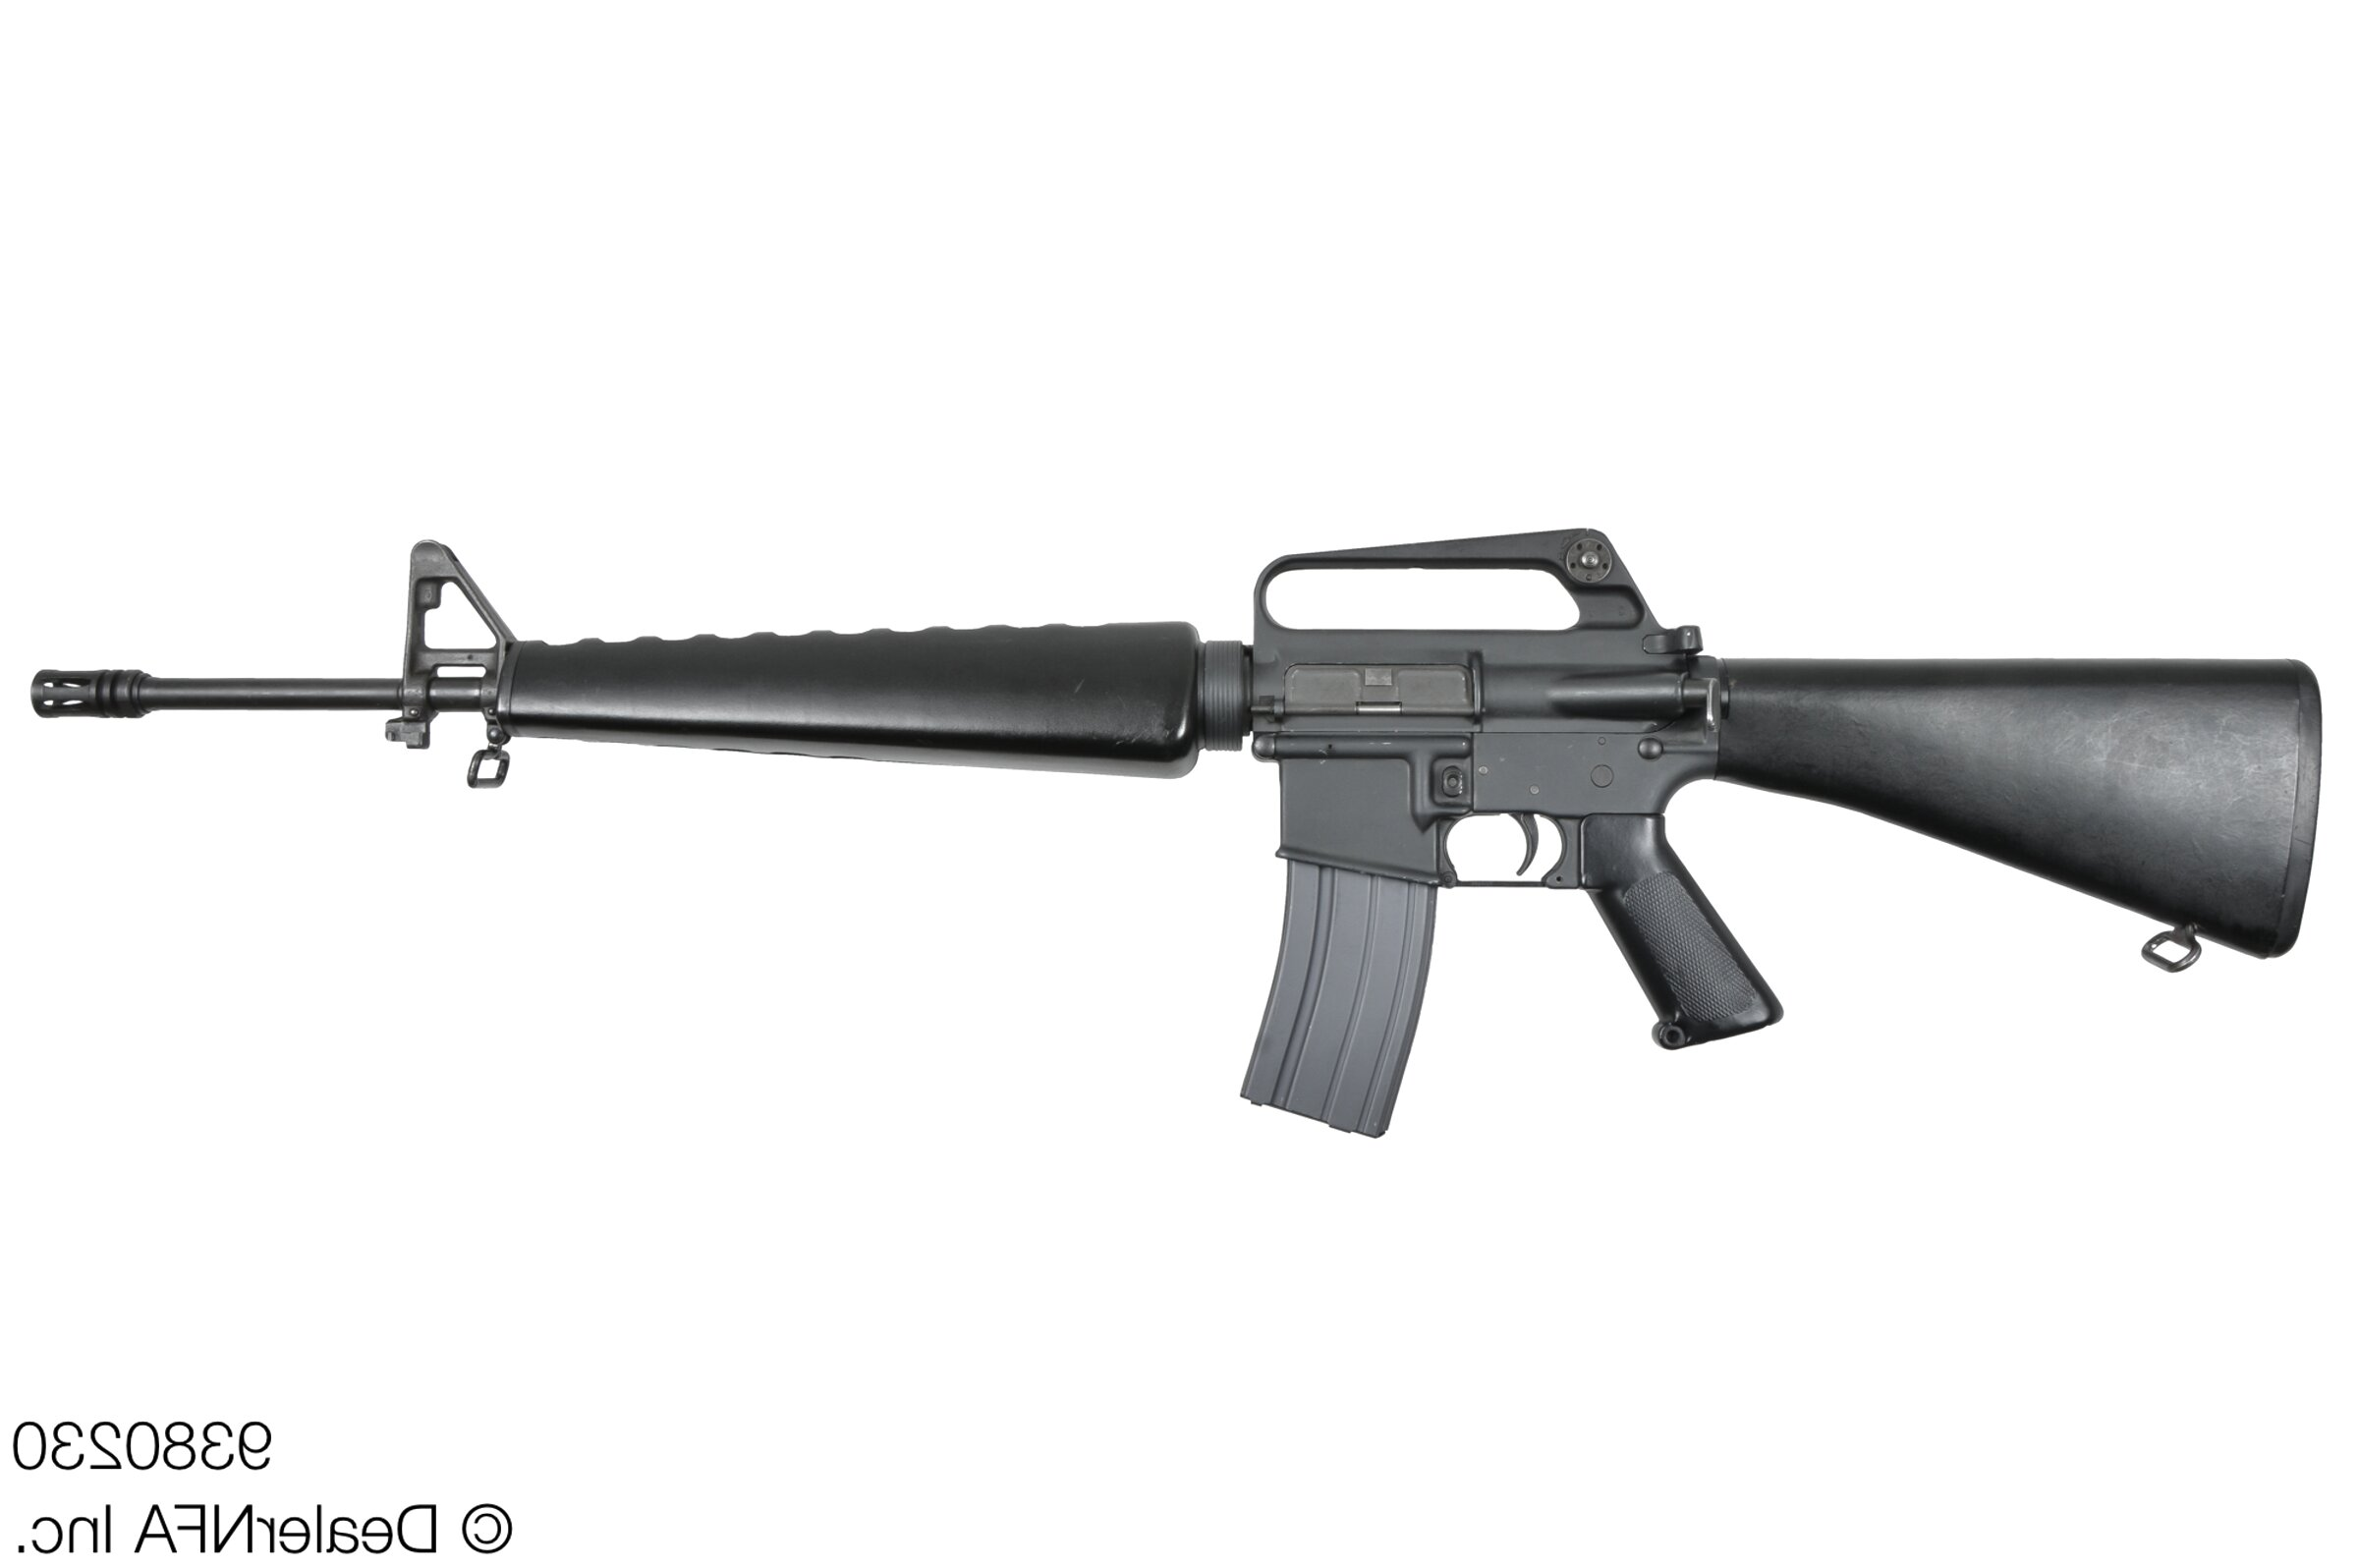 m16a1 for sale